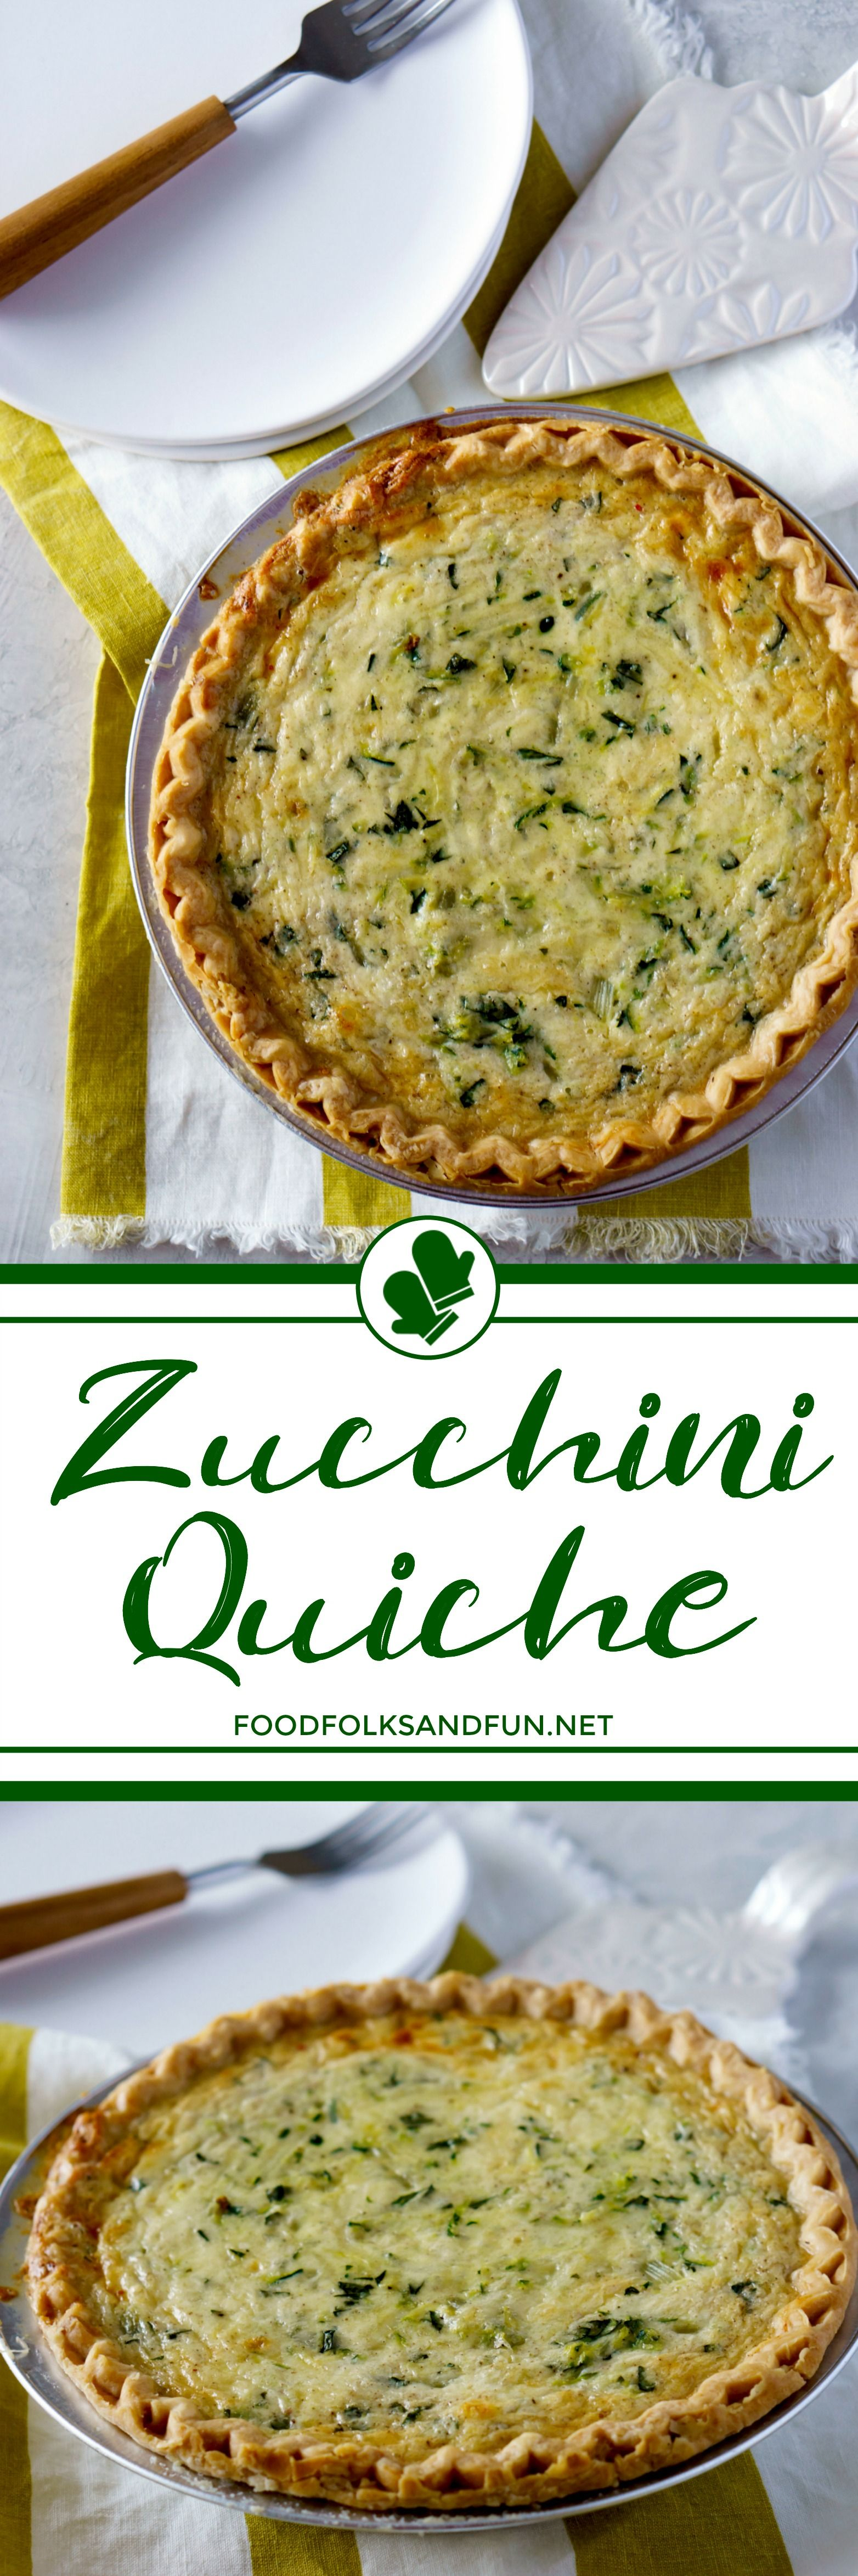 This Cheesy Zucchini Quiche is just the summer dinner recipe to make with fresh, in-season zucchini! Serve it warm or at room temperature for a cool summer supper!